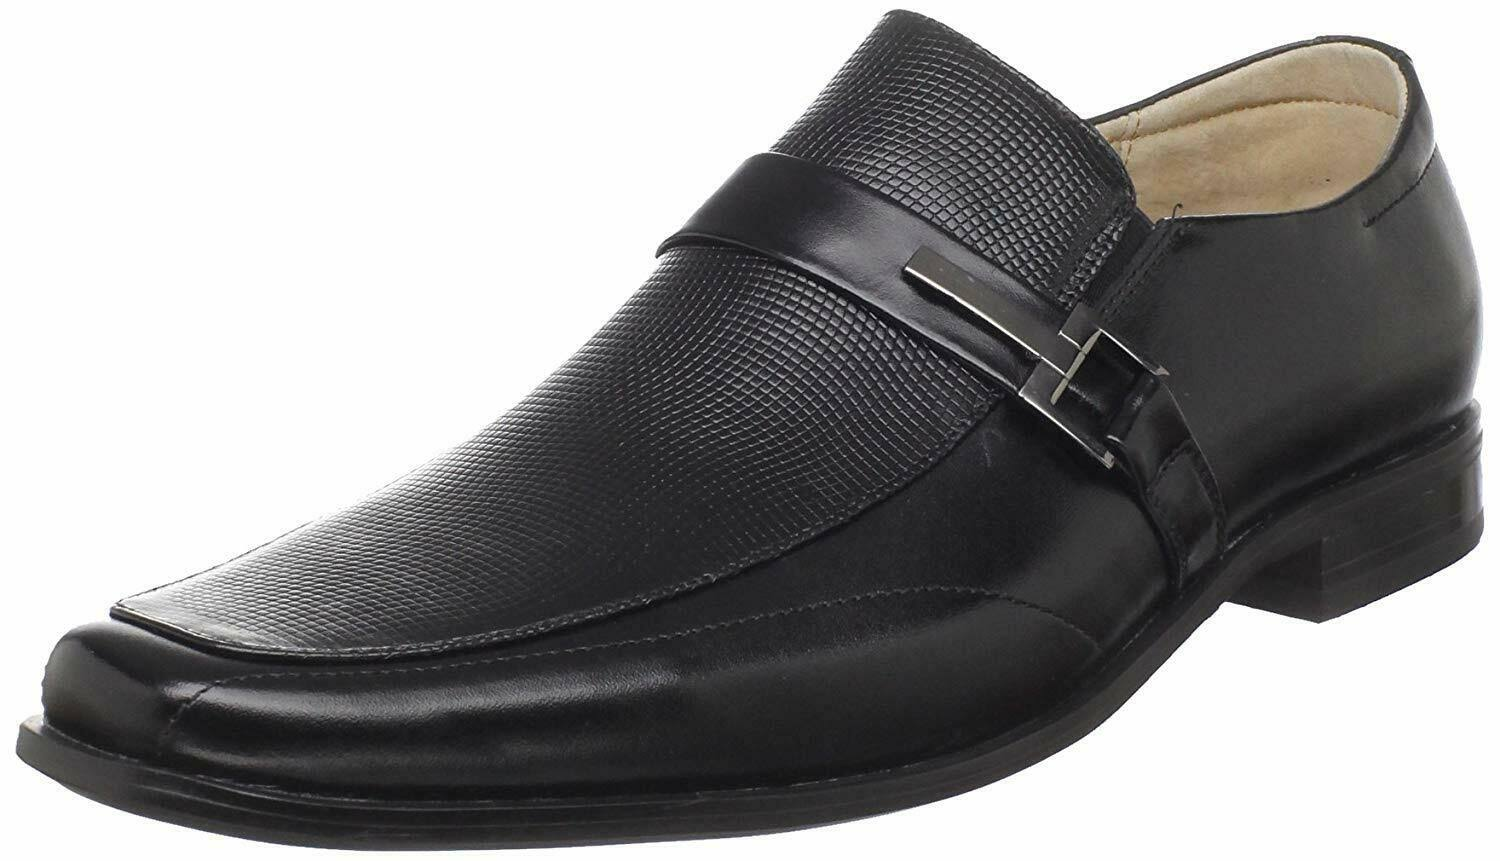 Stacy Adams Men's Beau - Black